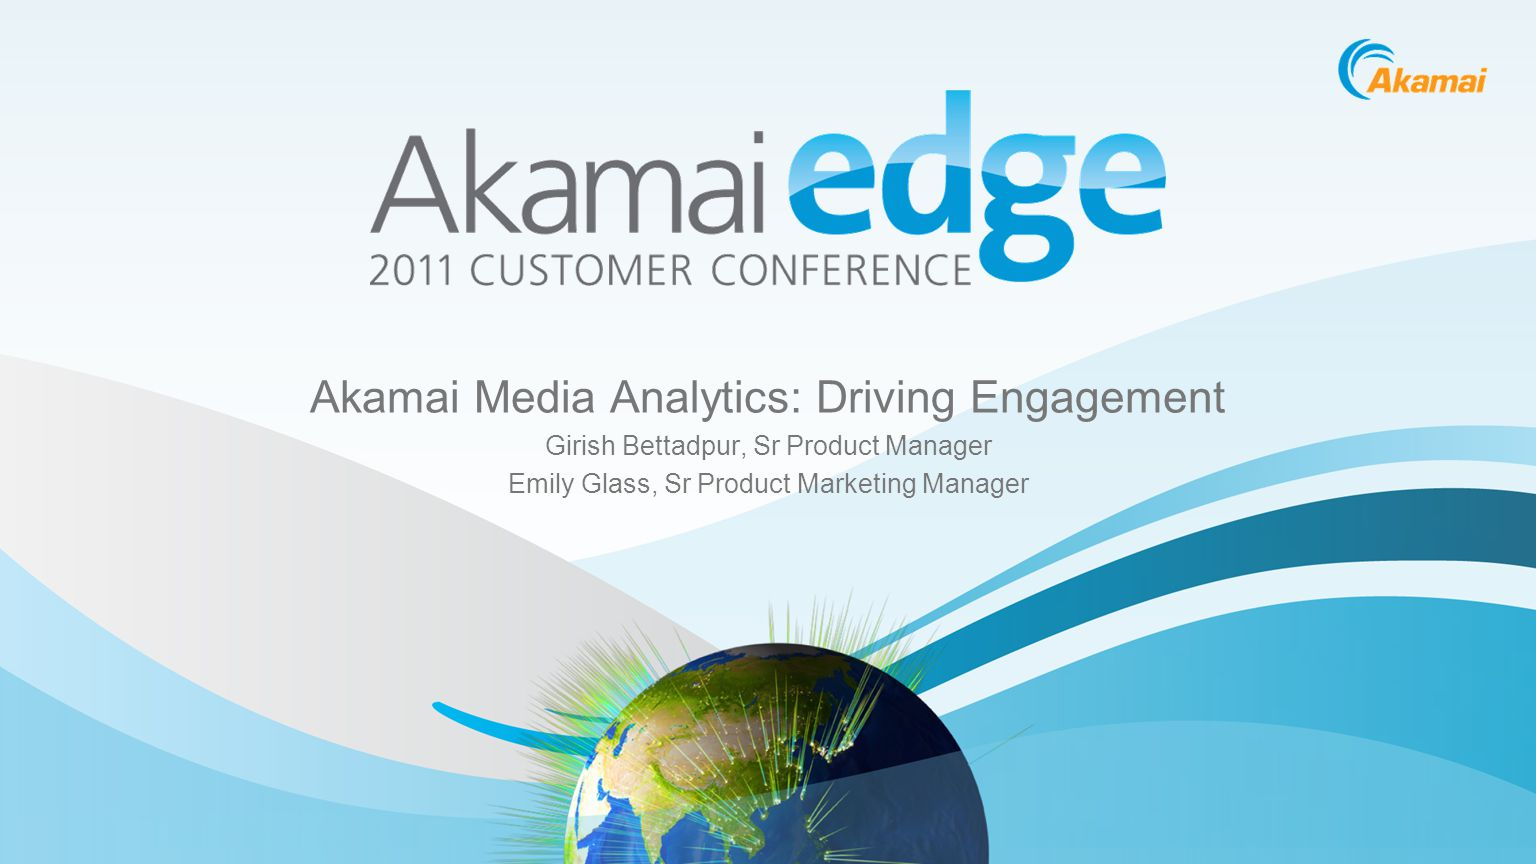 Akamai Media Analytics: Driving Engagement